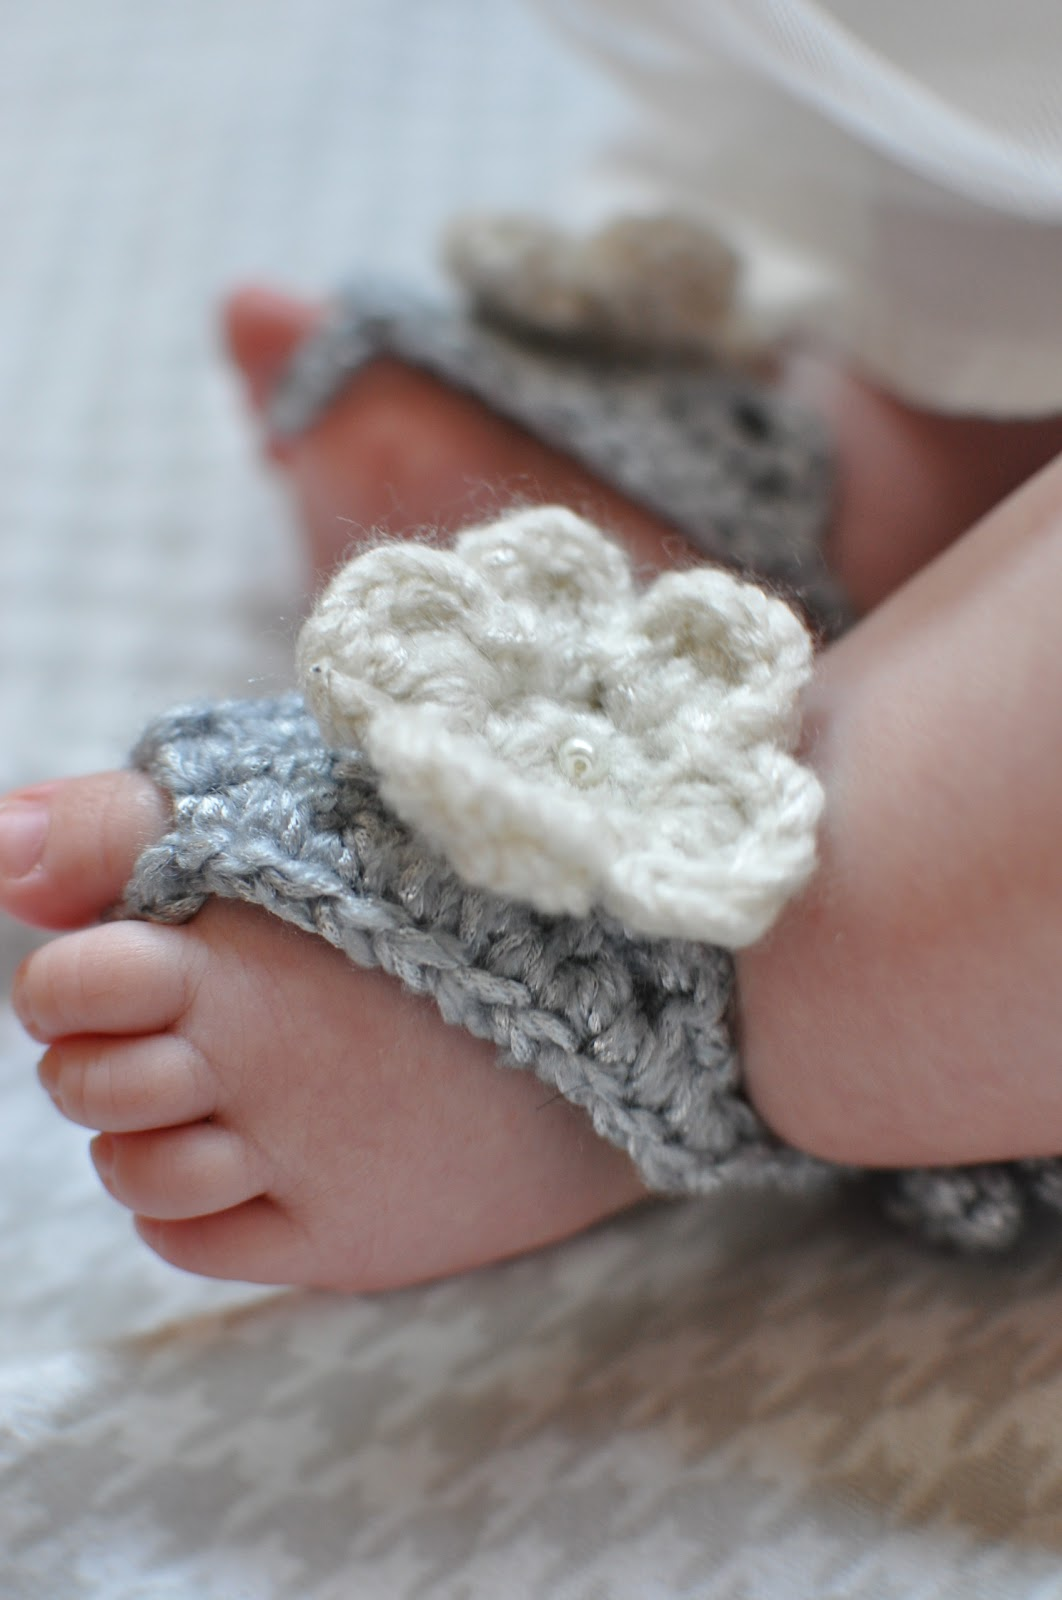 Crochet Baby Toe Sandals Free Pattern : The Misadventures of Handmade: Barefoot Baby Sandals